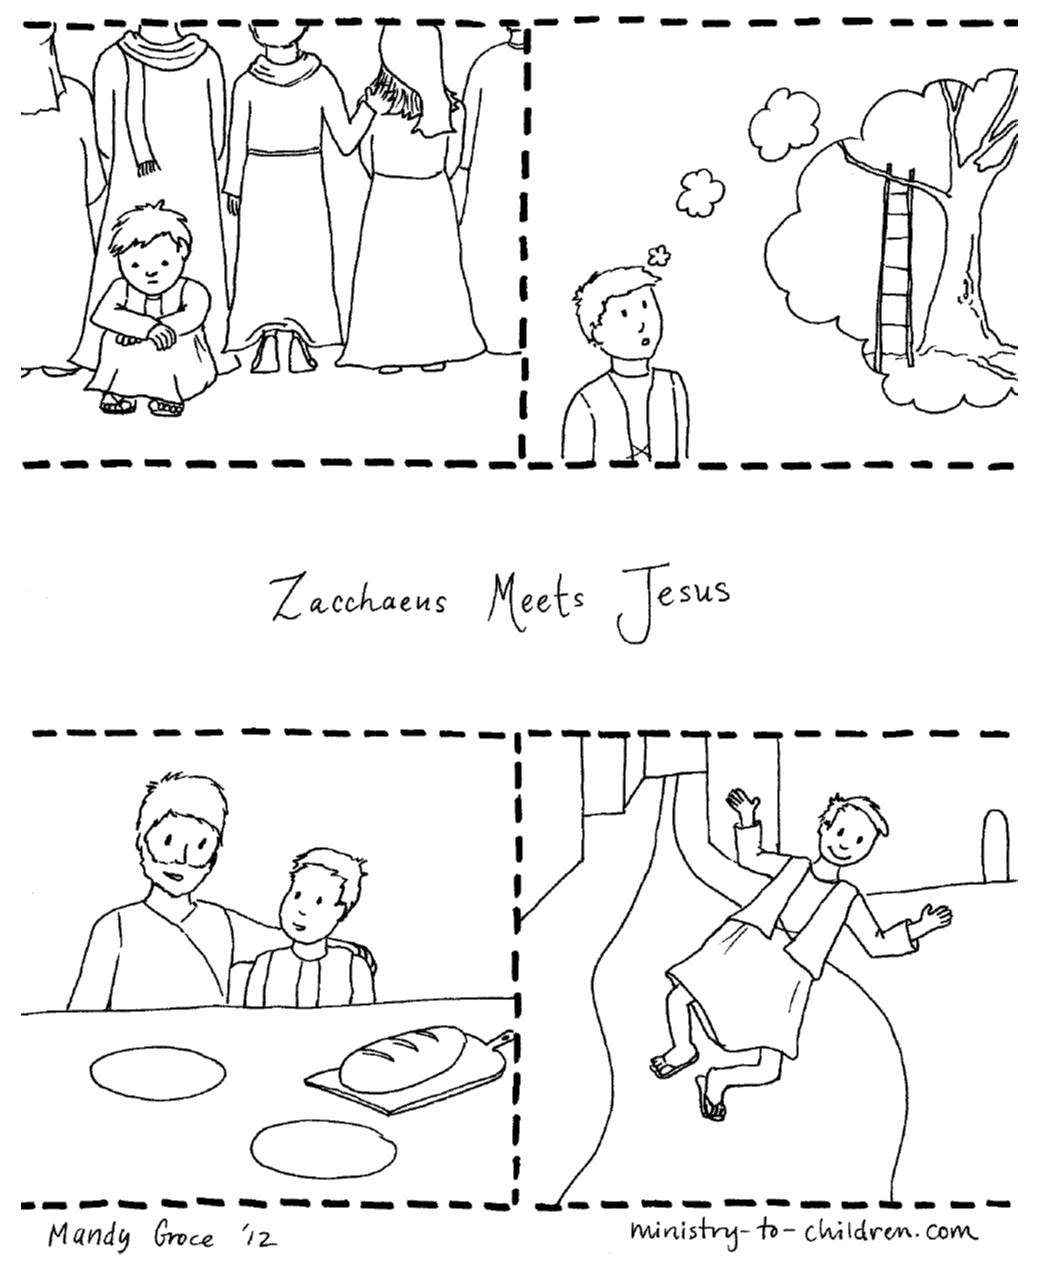 coloring pages zaccheus jesus and zacchaeus coloring page